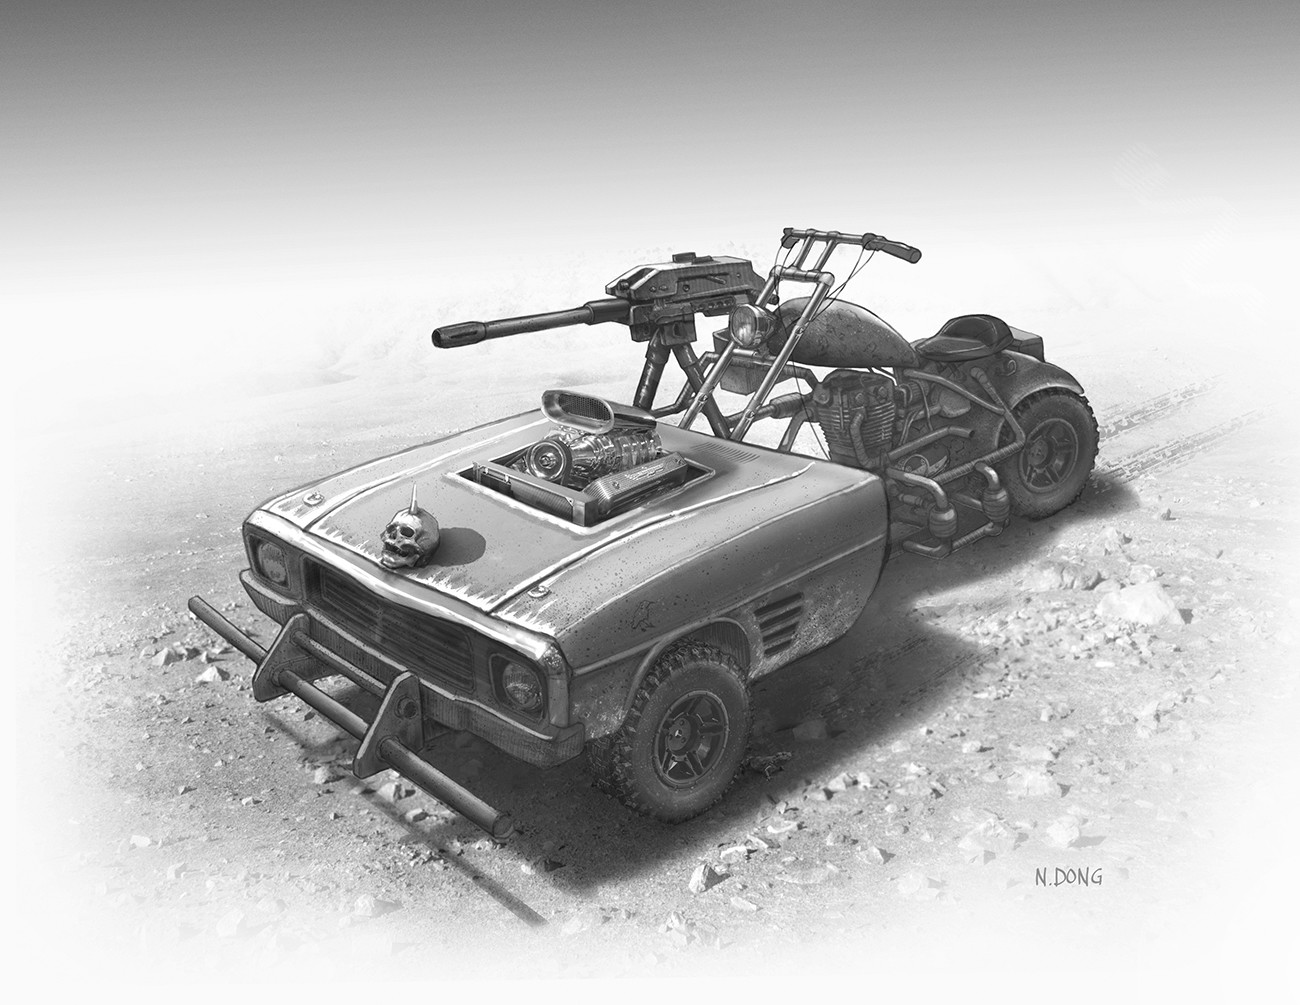 Madmax style vehicle design